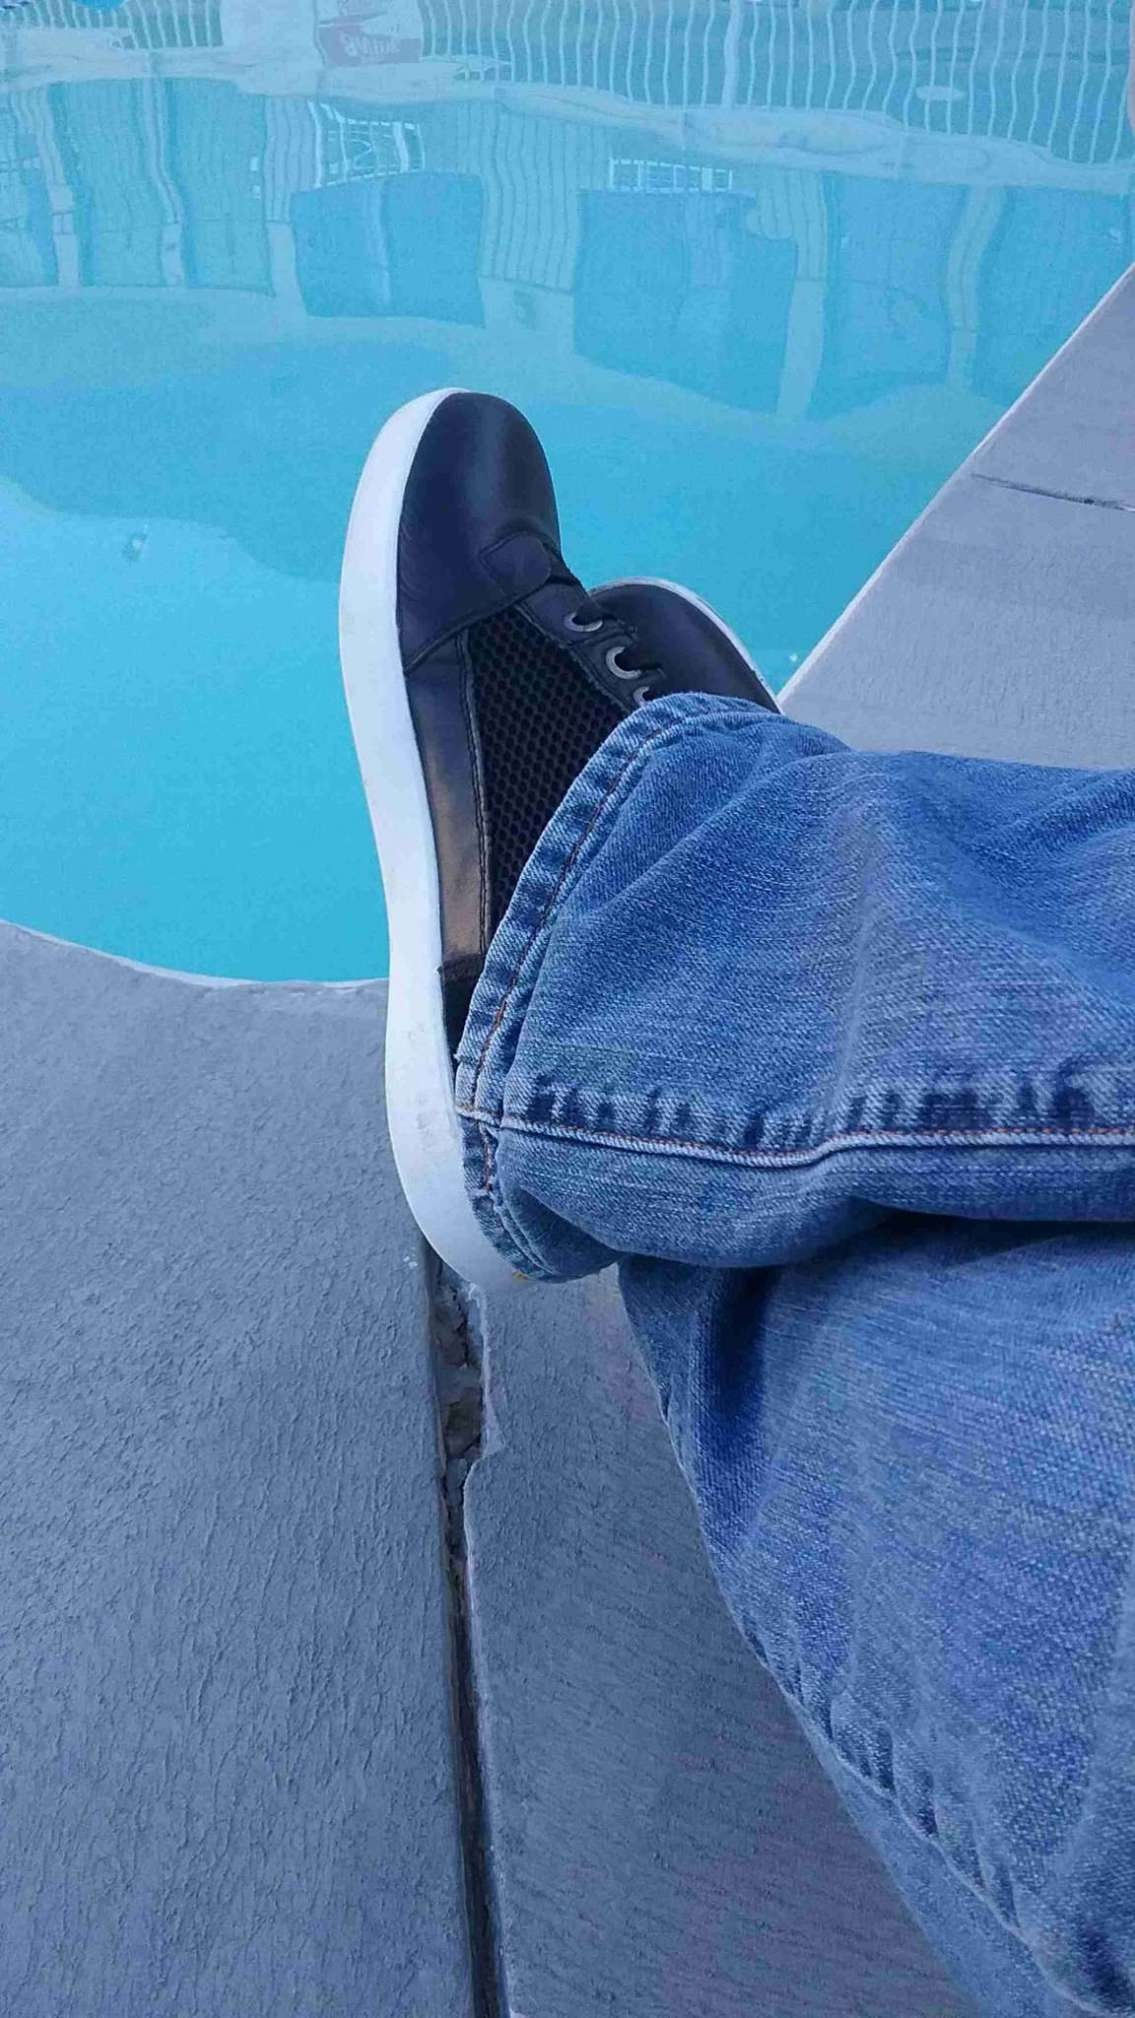 A man's feet, crossed at the ankles, is shown in the foreground. He's wearing the Mesh Hi-Top Sneakers from Indian Motorcycle, and they appear comfortable and relaxed. In front of him is the corner of a motel pool, the water inviting and blue.